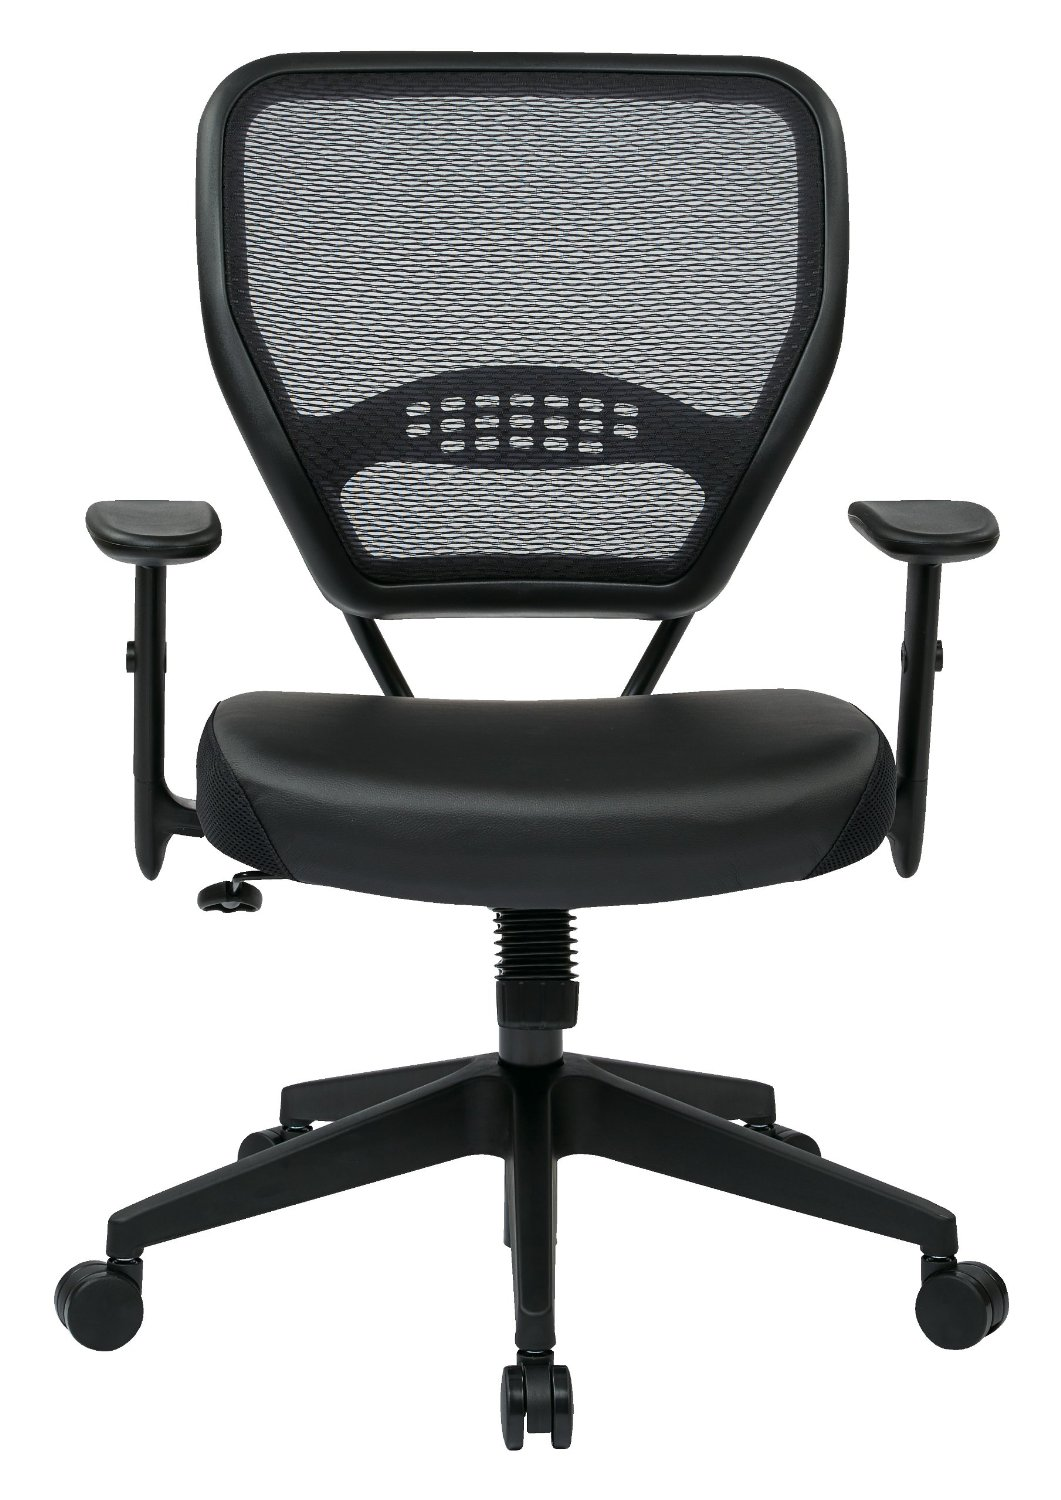 Space Seating Pro Managers Chair